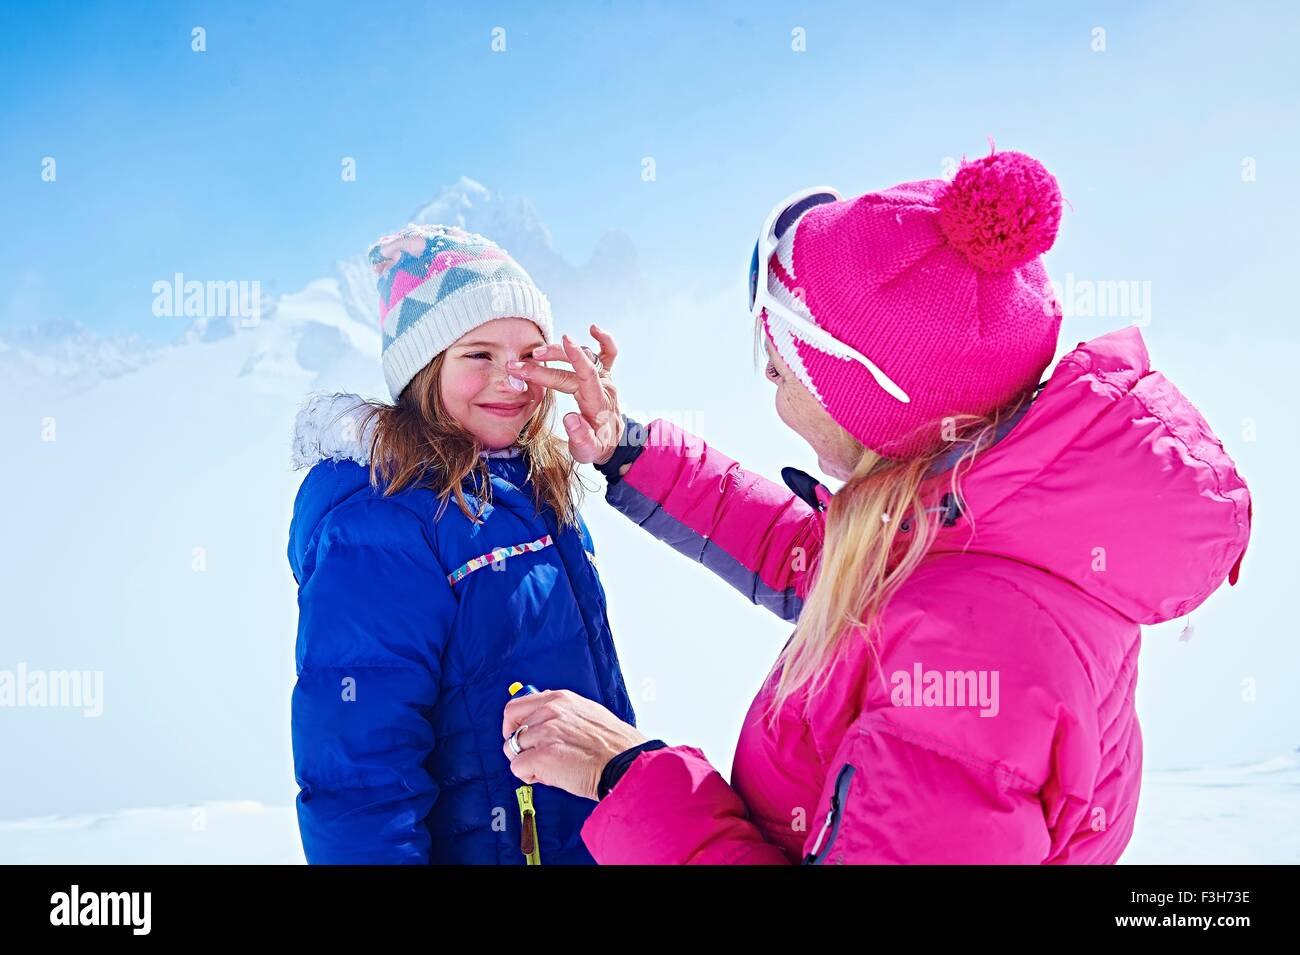 Mother applying sun cream on daughter's face, Chamonix, France - Stock Image